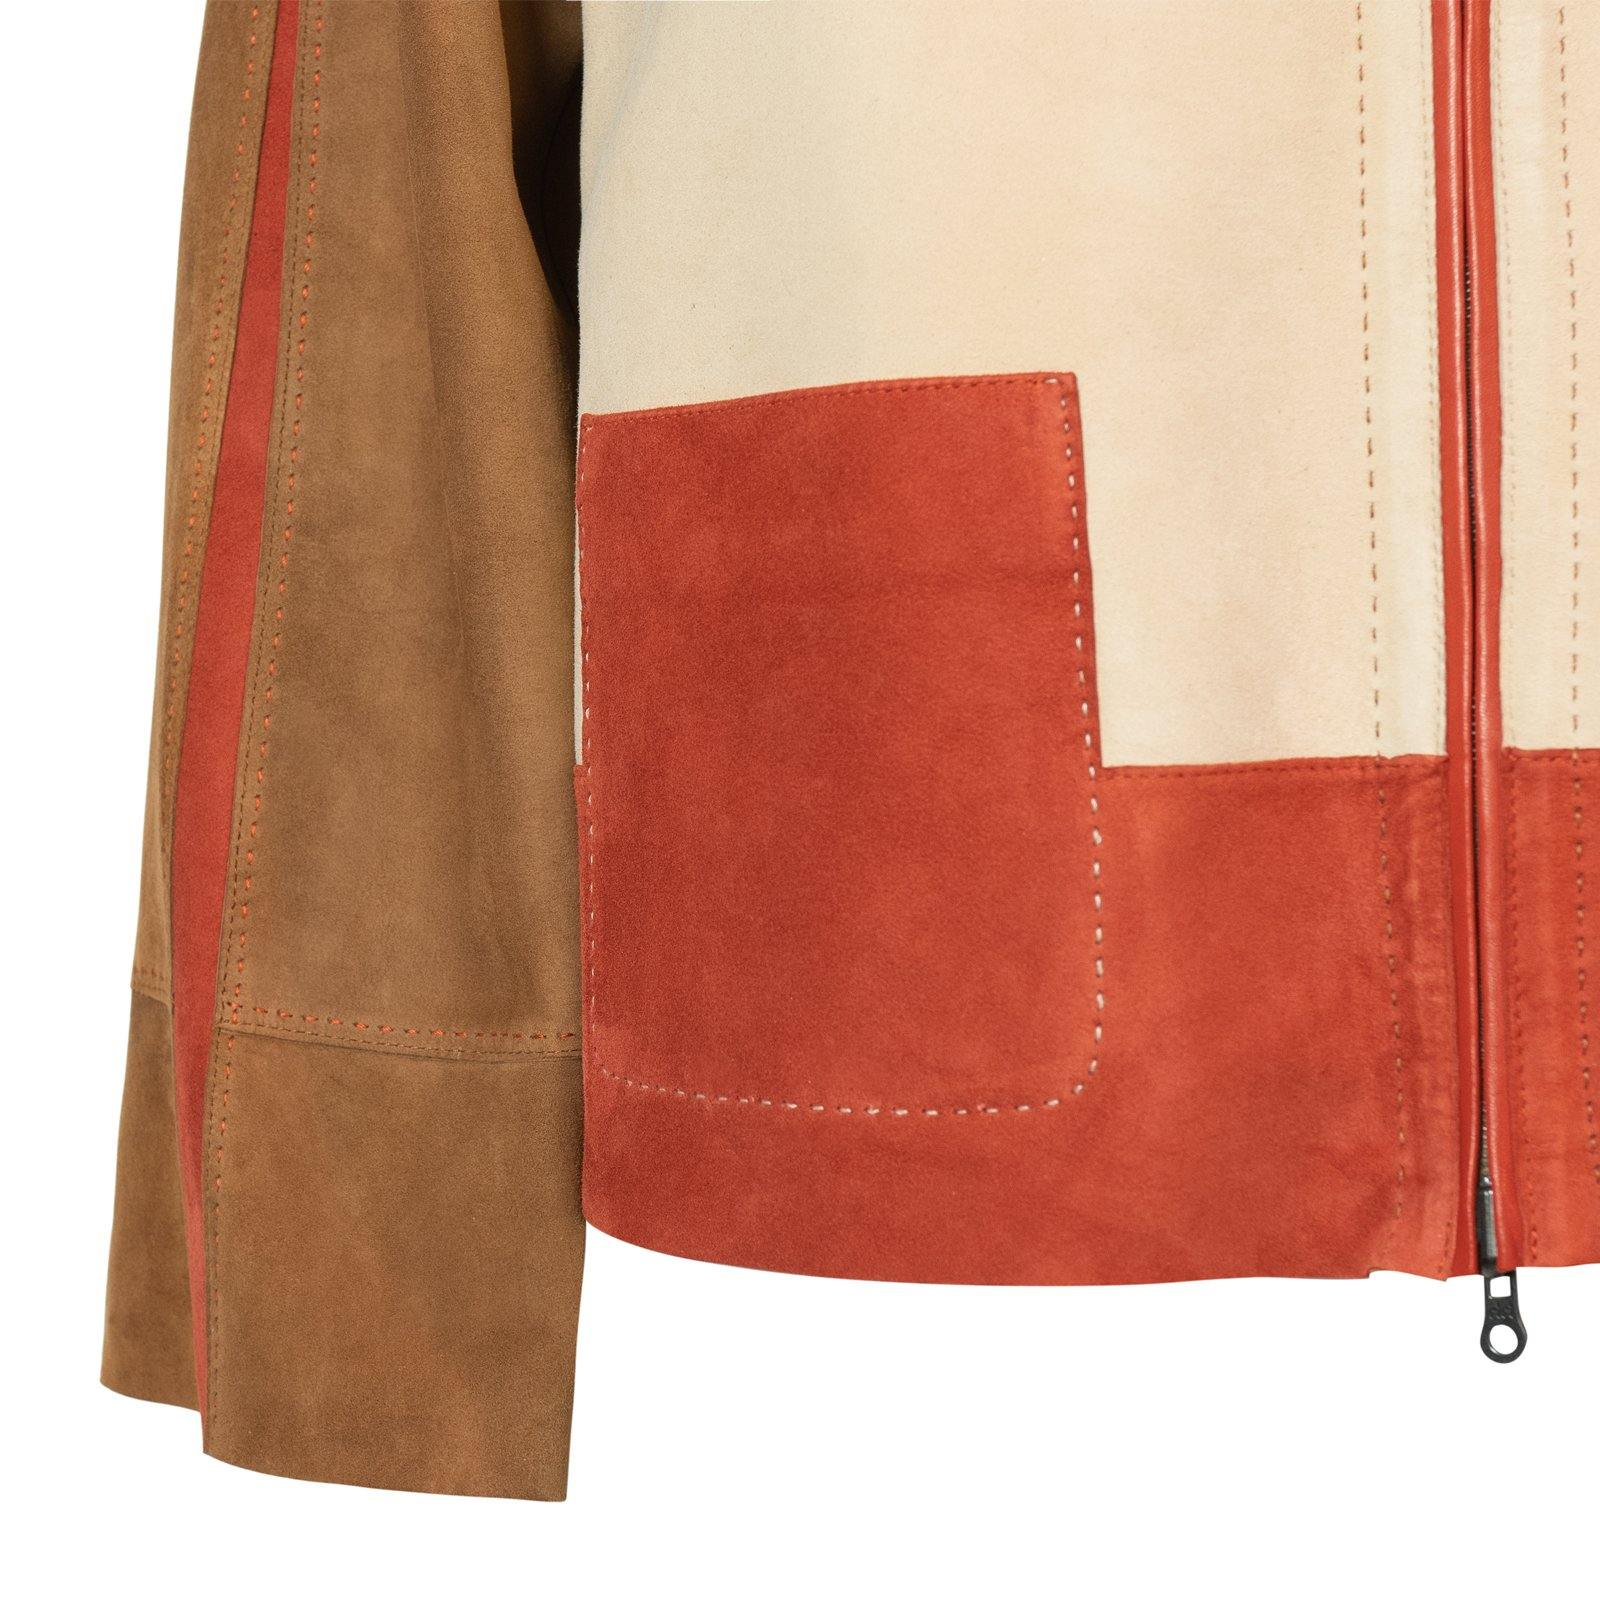 HEPBURN Reversible Leather Jacket in Cuoio, Nude and Mattone